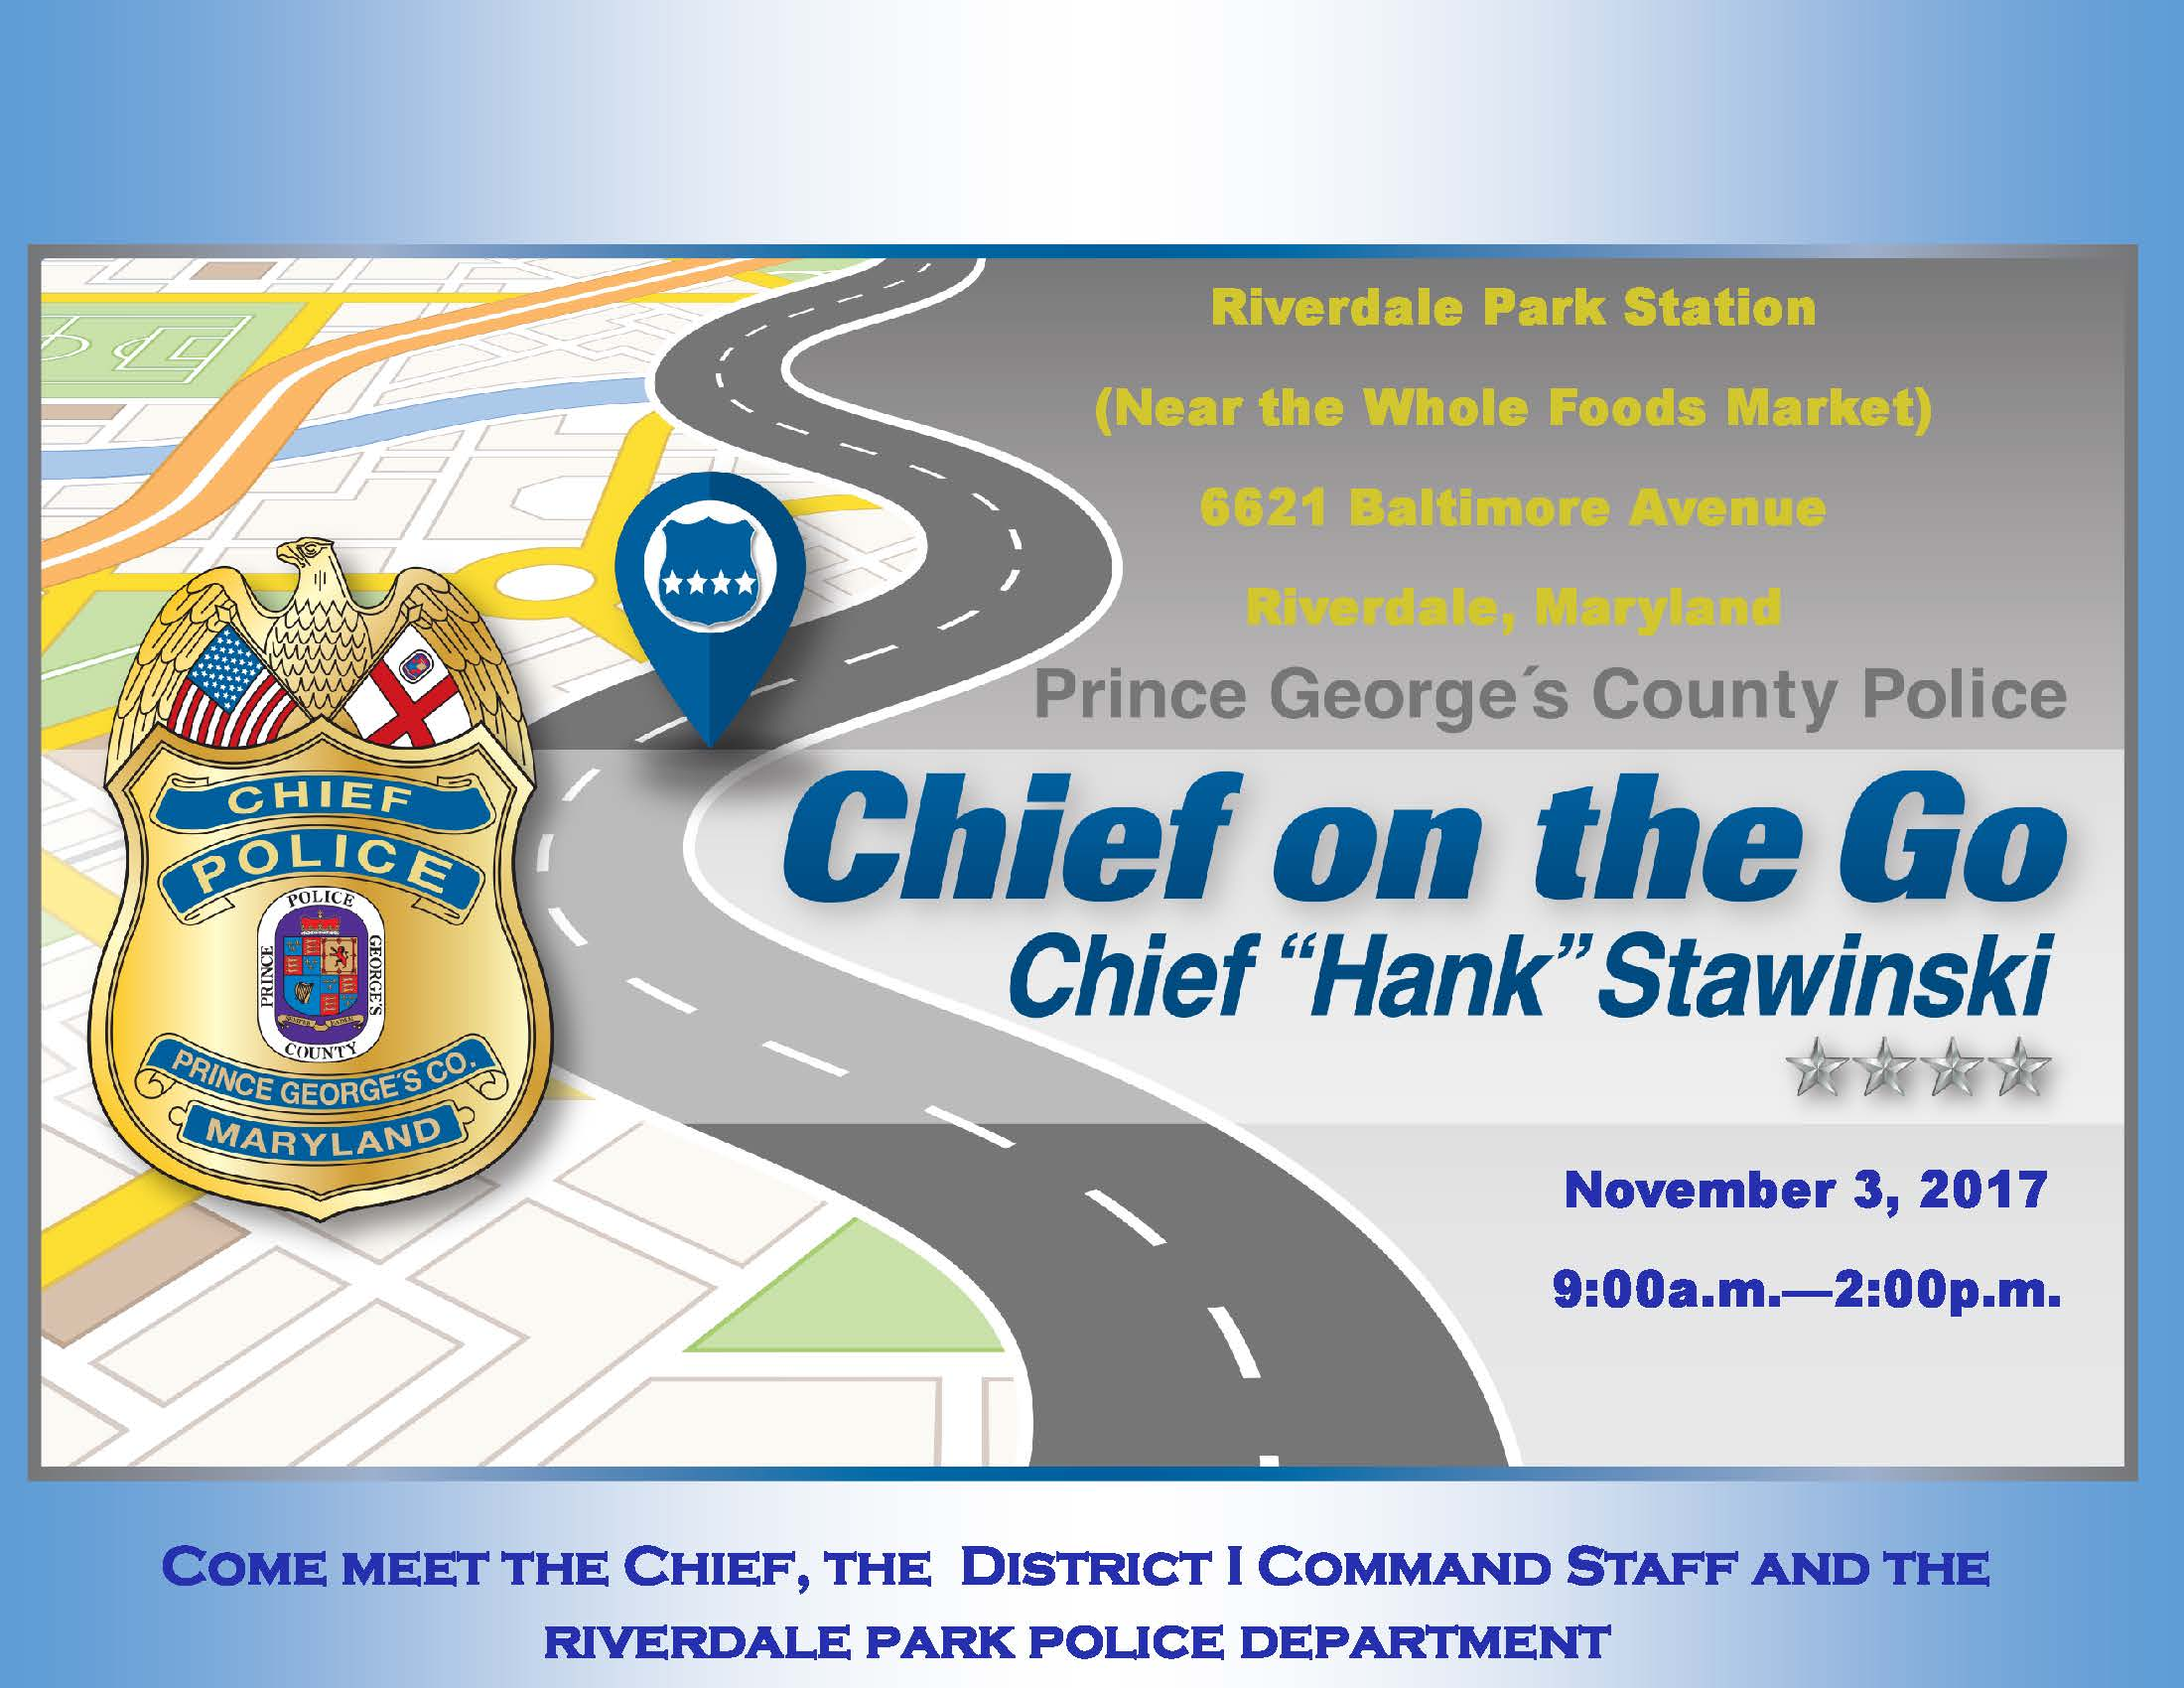 Chief on the Go flyer_Riverdale Park